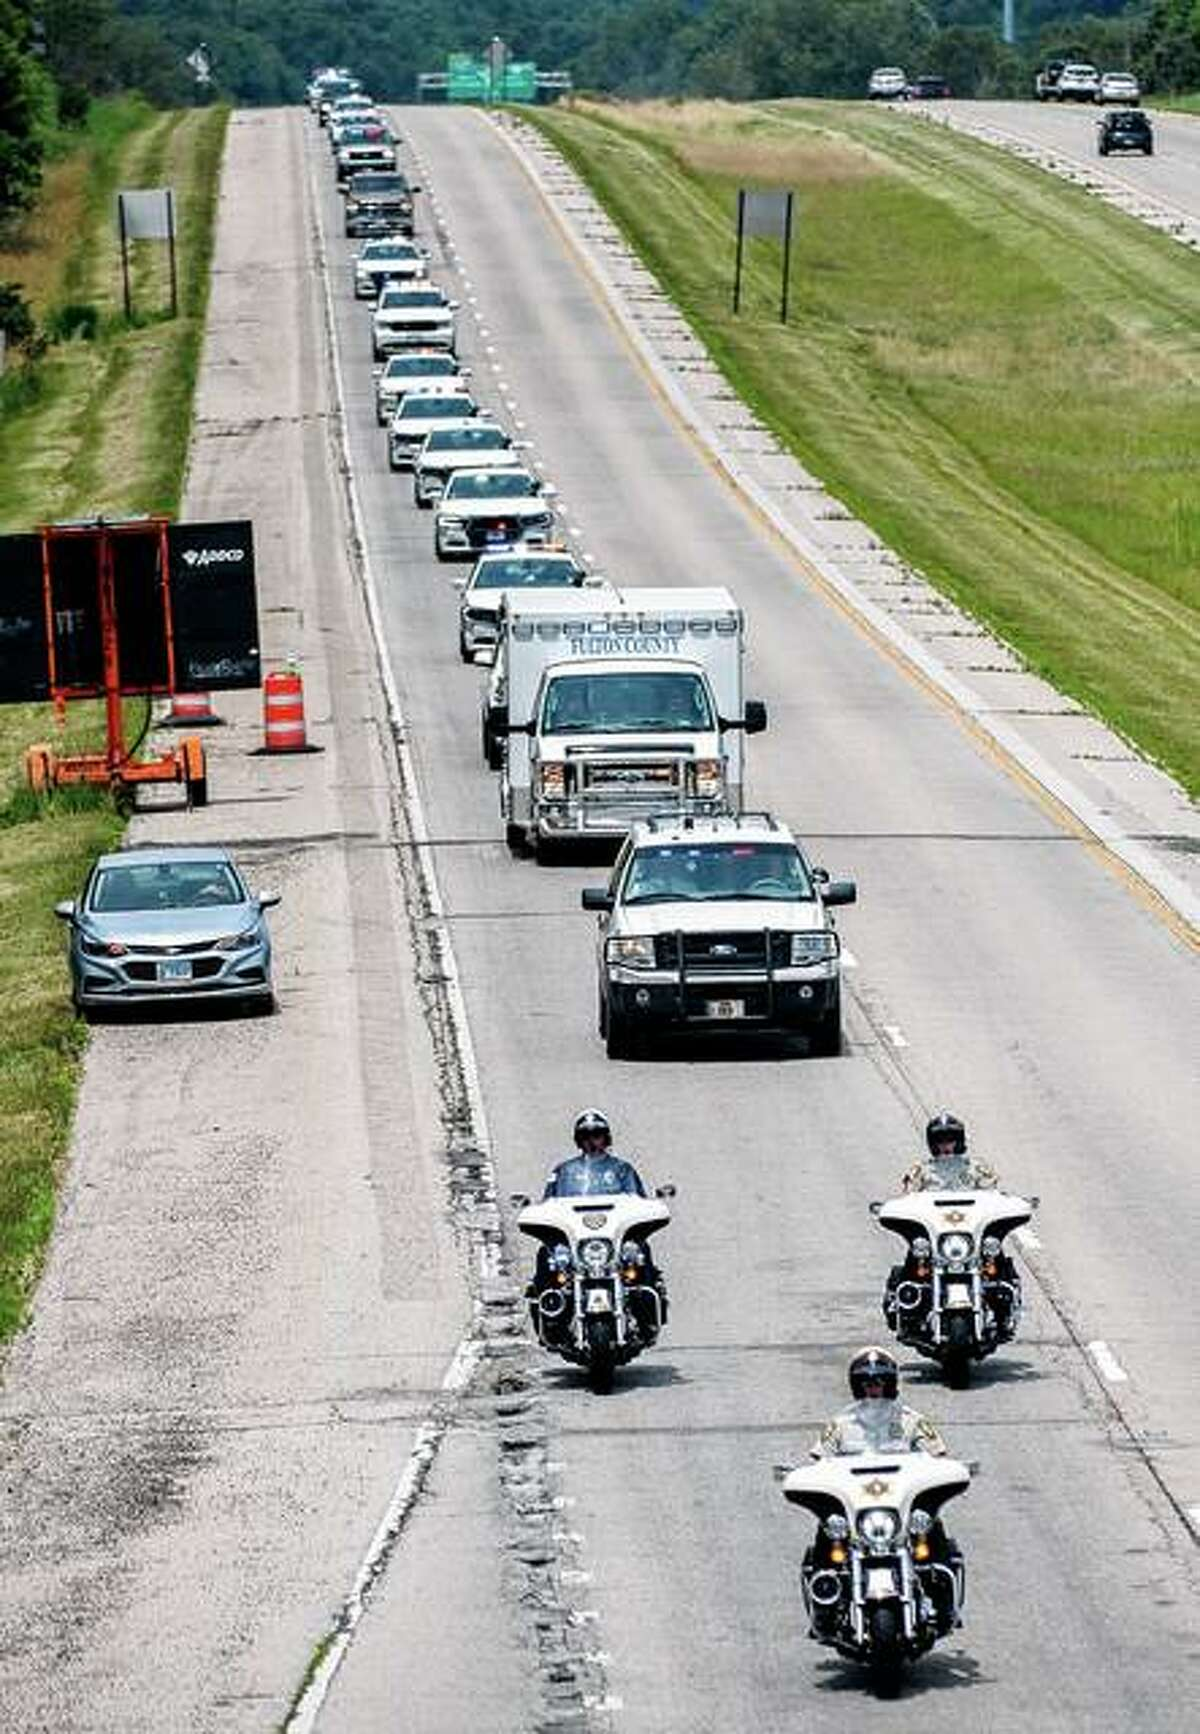 A long line of emergency vehicles, including an ambulance carrying the remains of Fulton County Deputy Troy Chisum, heads toward the Illinois Route 116 exit on Interstate 74 en route to a Lewistown funeral home Wednesday in Peoria. Chisum was shot to death June 25 while responding to a domestic disturbance call in rural Avon.